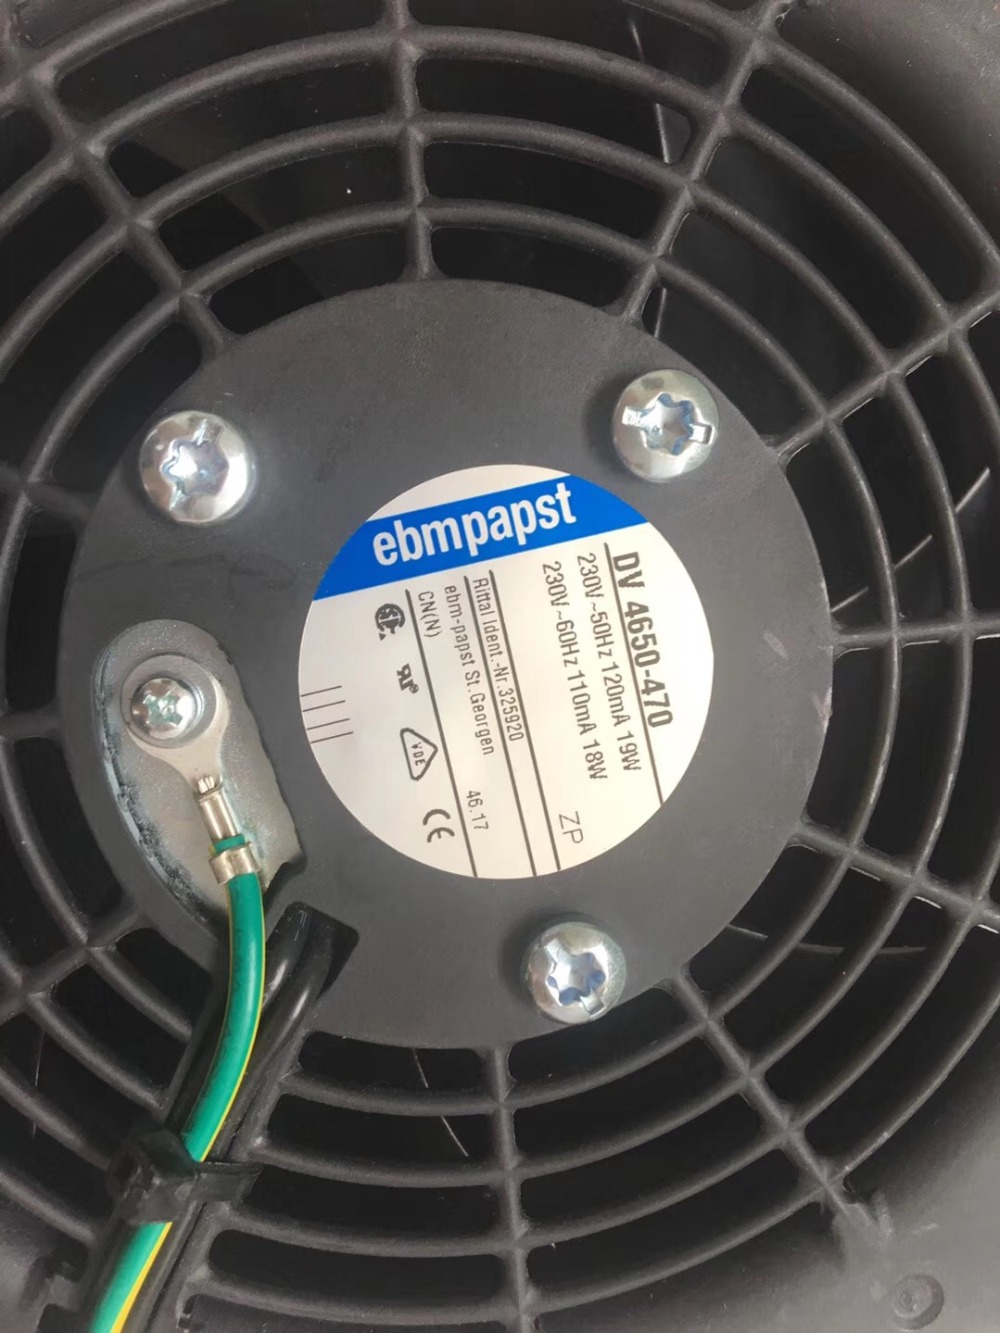 Brand New ebmpapst DV 4650-470 230V-50HZ 110MA 19W Cooling Fan original ebmpapst 1120ntd tc 220 230v 16w 19w cooling fan